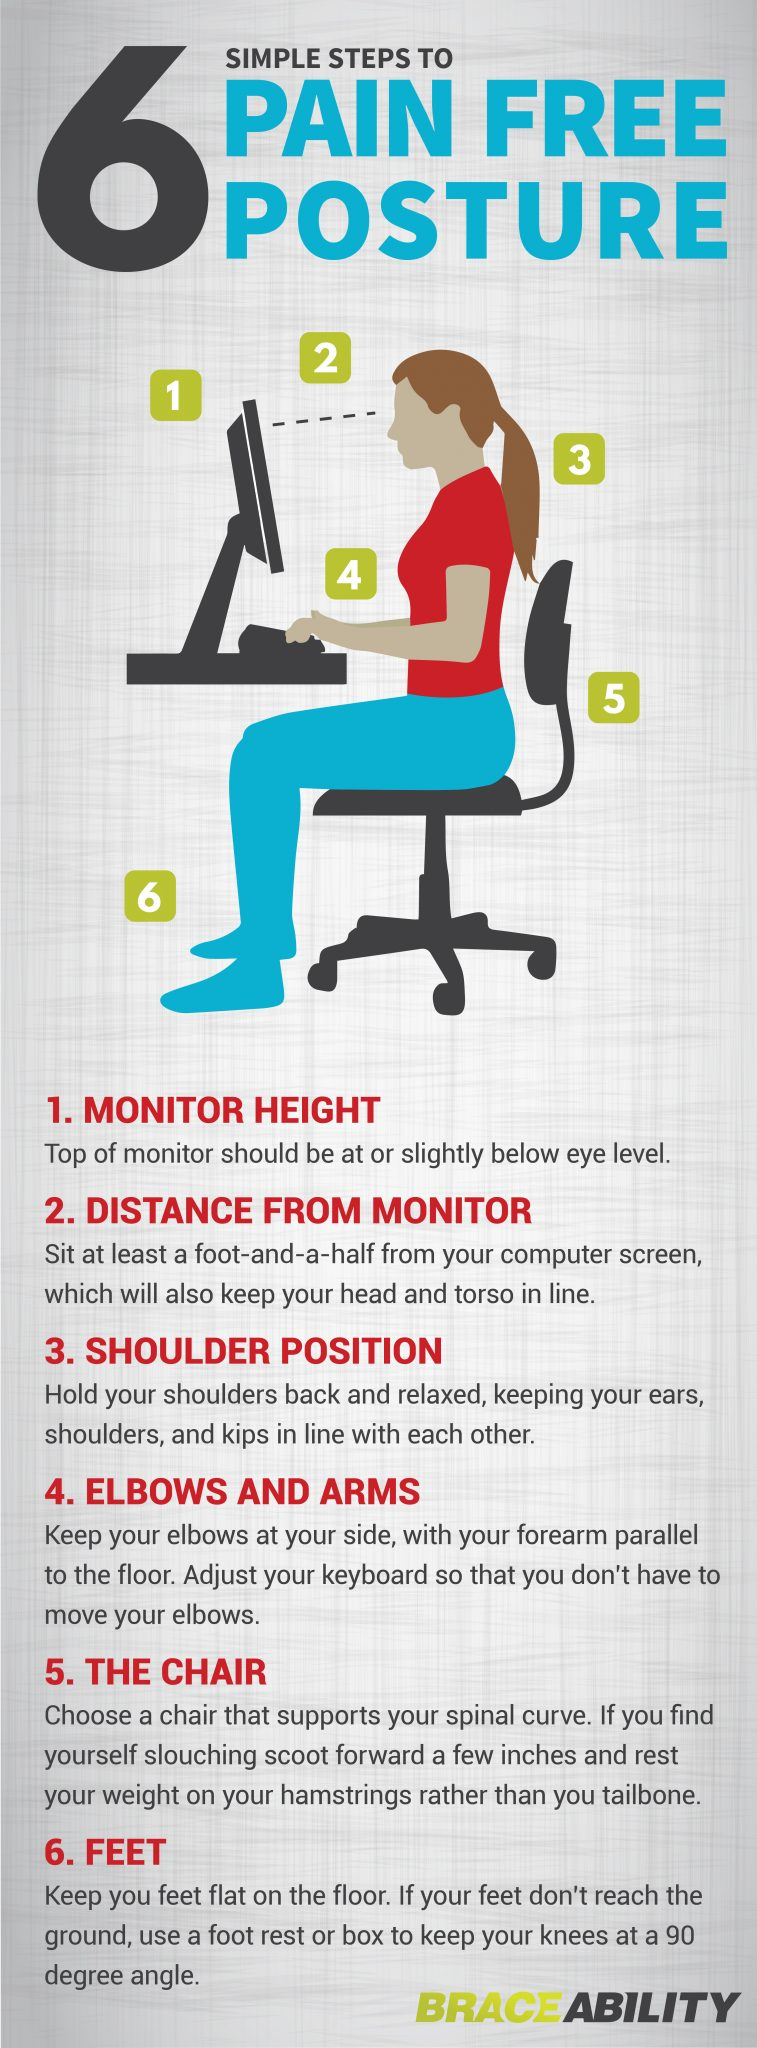 how you should sit at a desk when looking at a computer. feet flat on the floor and monitor at eye level